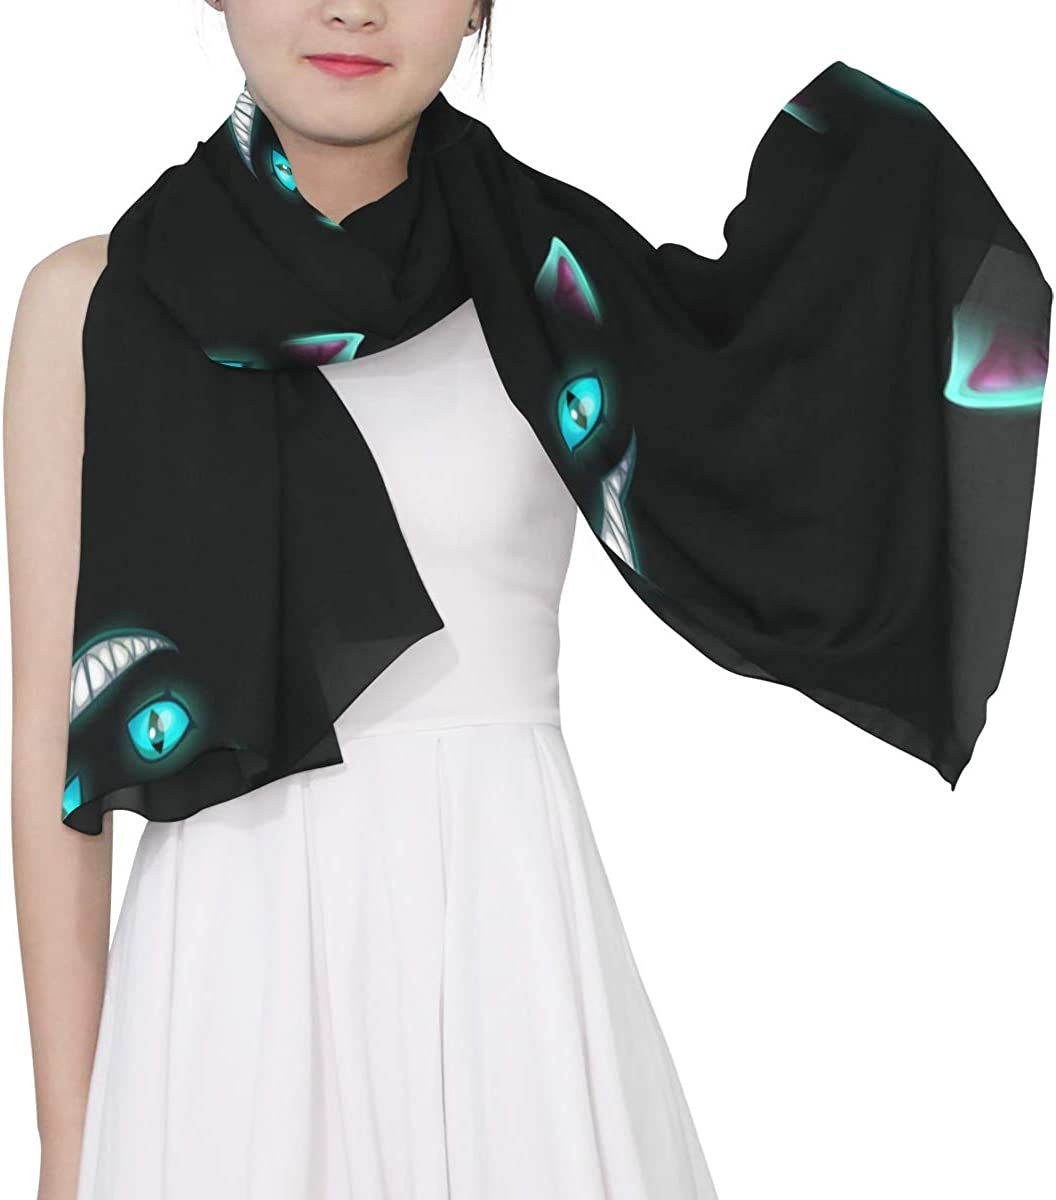 Delicate Cat Eyes Unique Fashion Scarf For Women Lightweight Fashion Fall Winter Print Scarves Shawl Wraps Gifts For Early Spring